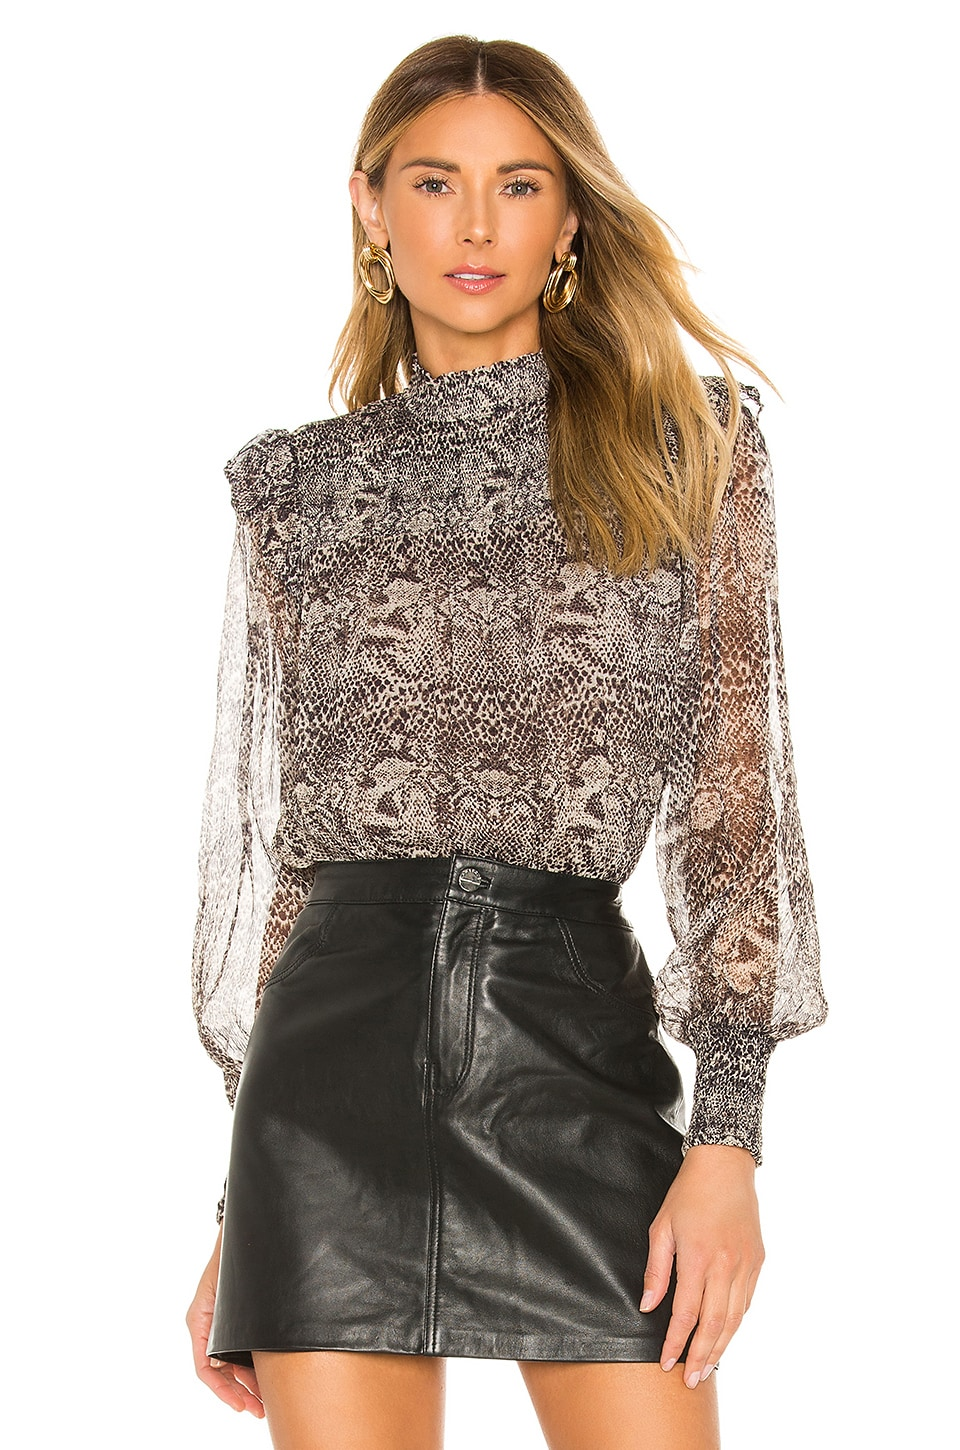 Free People BLUSA TRANSPARENTE ROMA